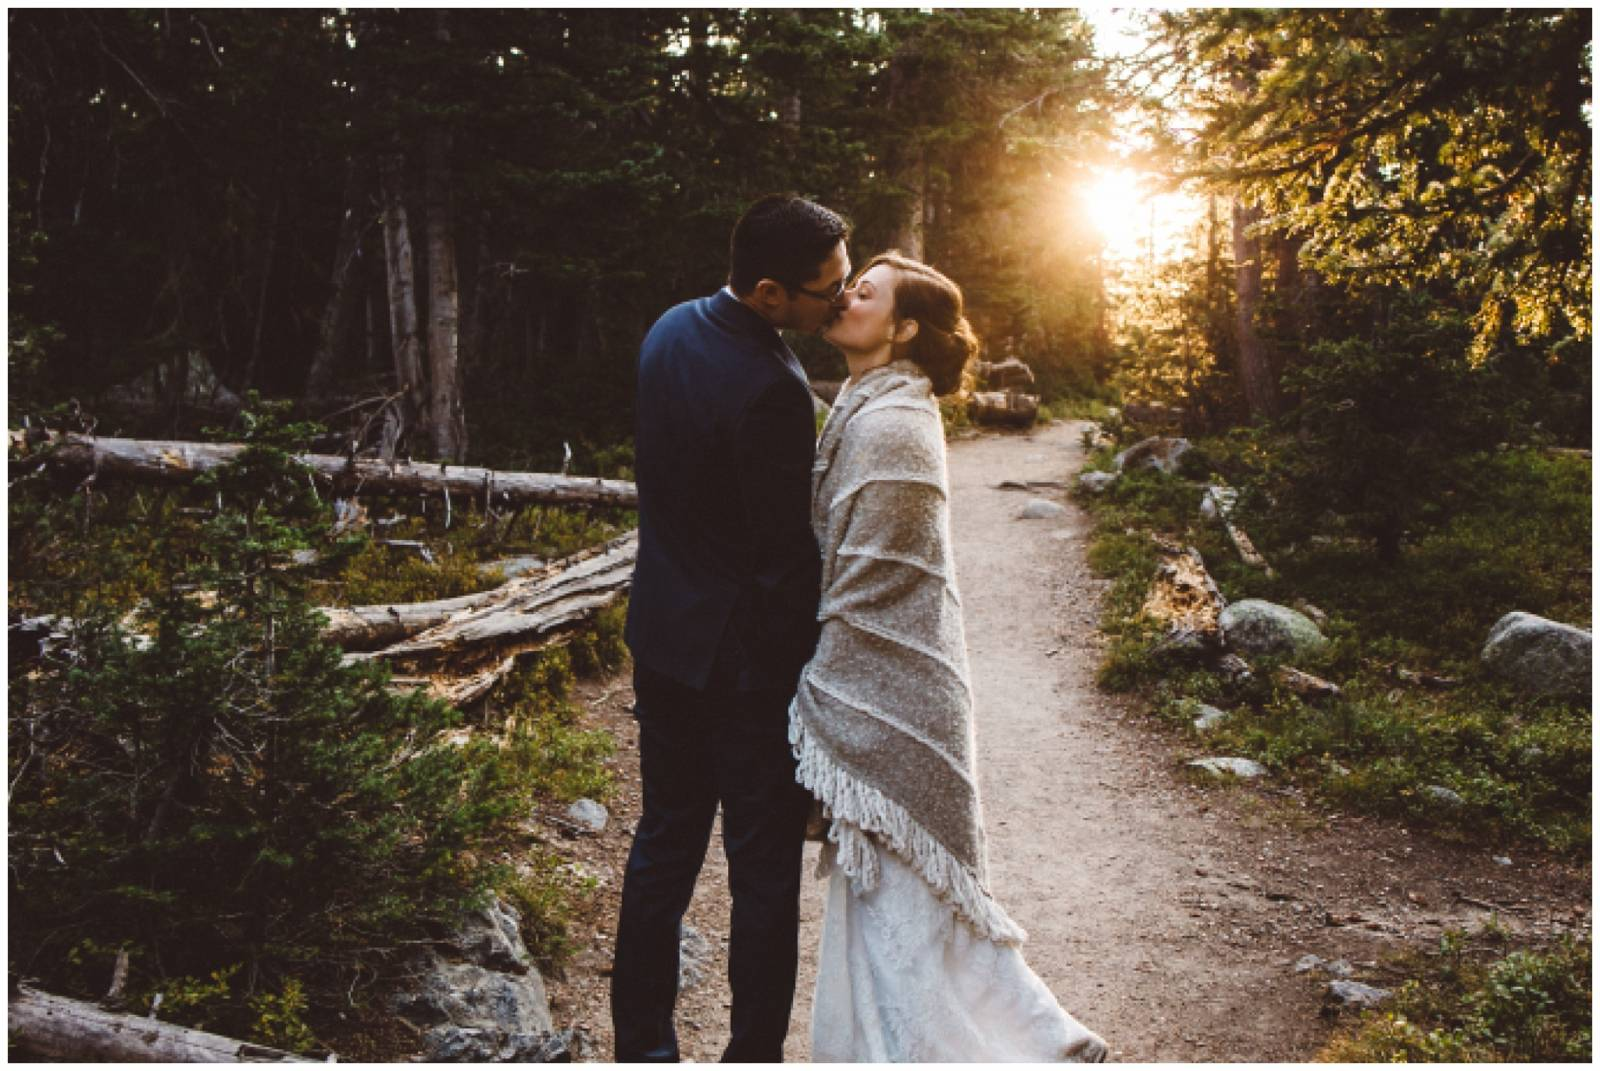 bride and groom kissing at a sunset destination Rocky Mountain wedding | Shayla Velazquez Photograph